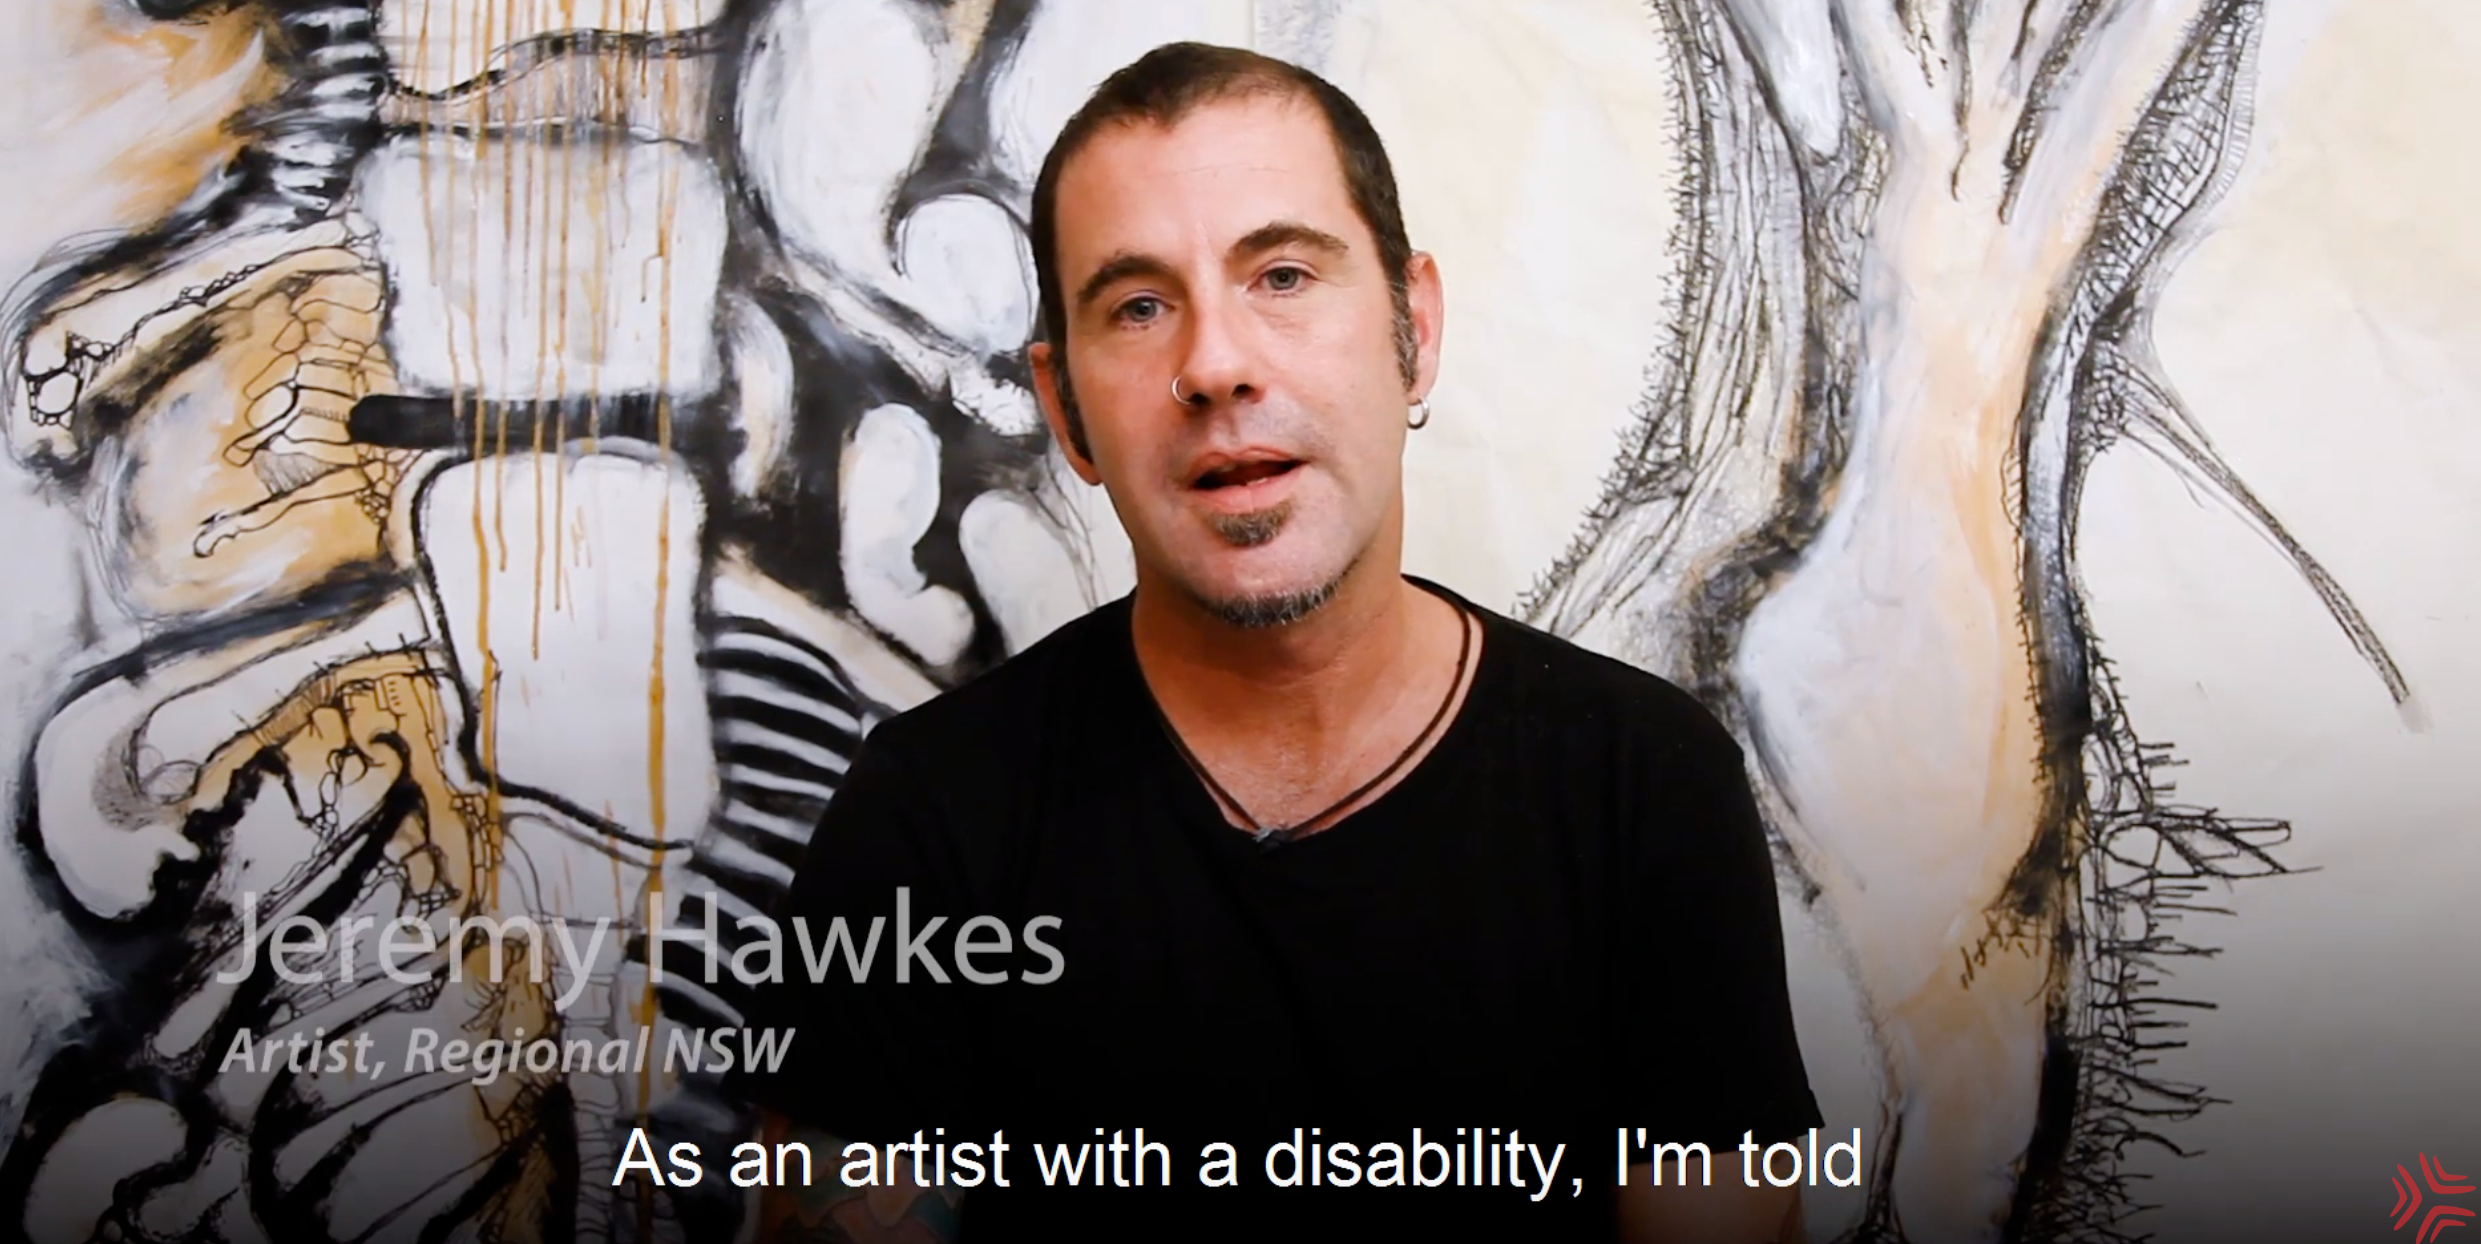 Support Arts Access Australia - You can help create change in the lives of artists and arts-workers with disability across Australia, who are drastically underpaid, underemployed and under-represented in the arts.